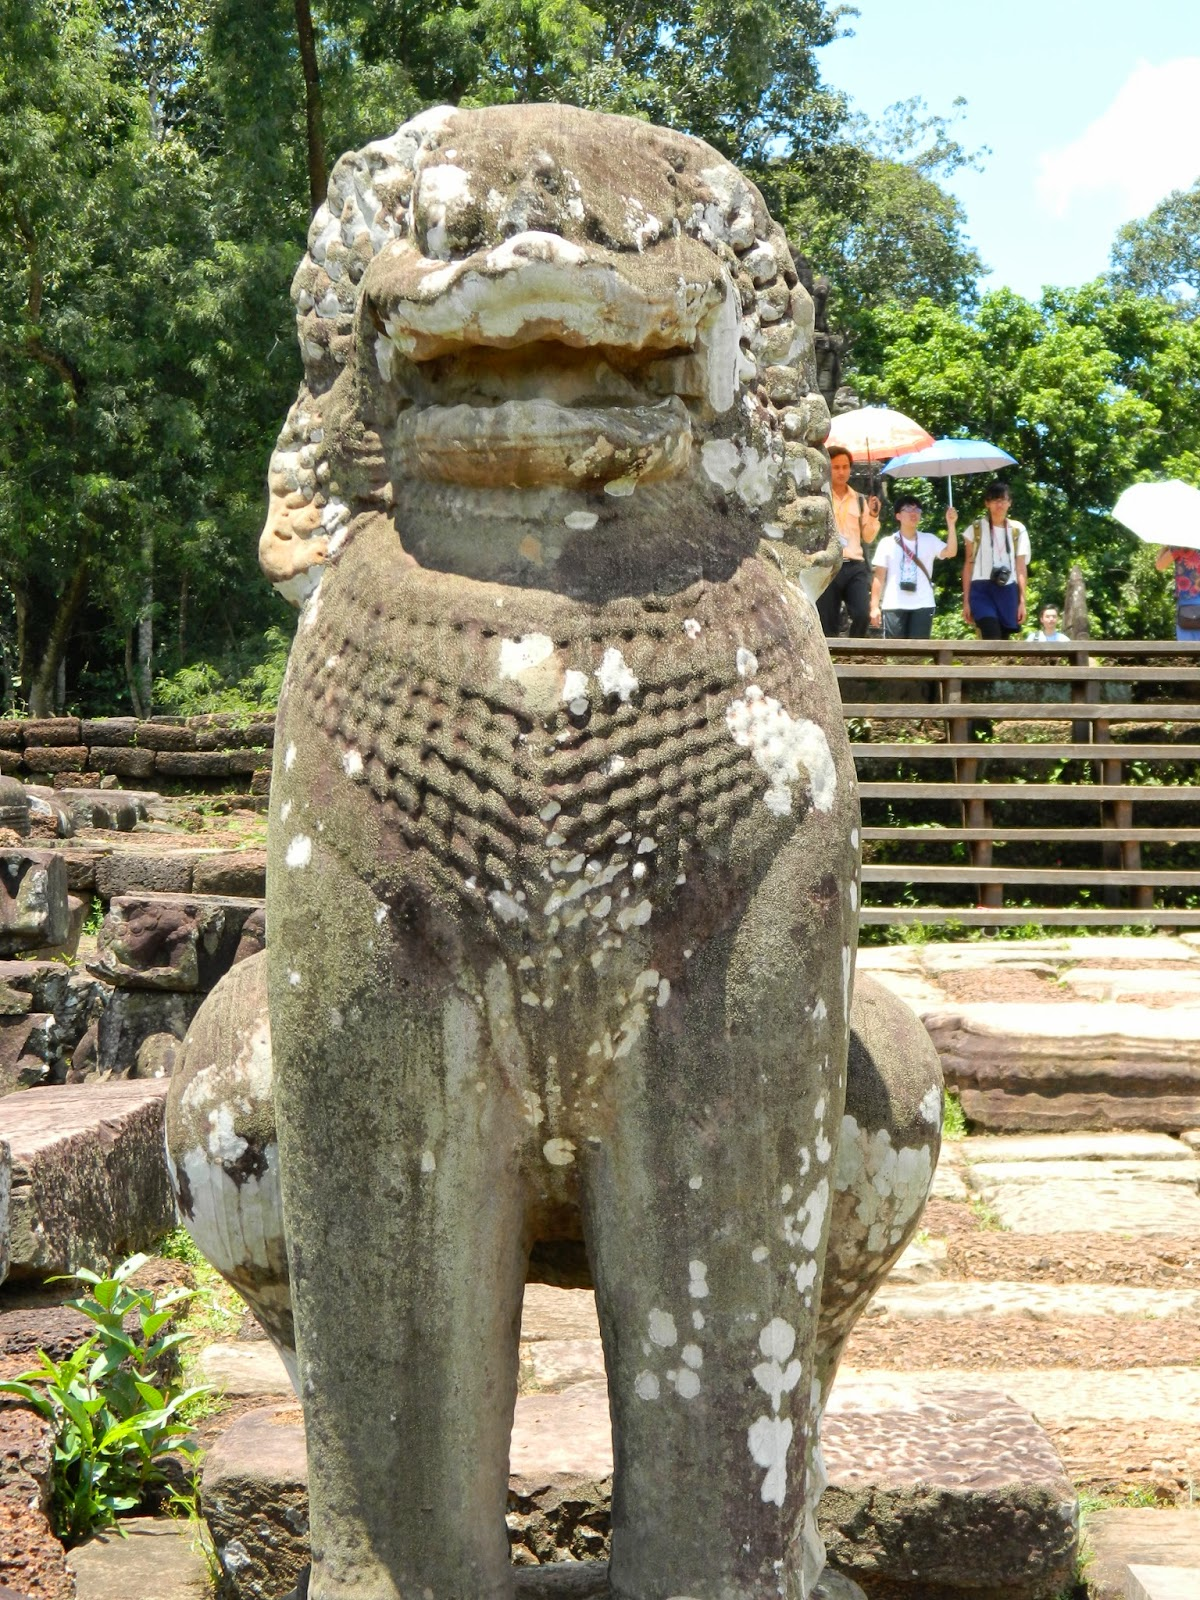 Statues of lions are seen everywhere but surprisingly there were/are no lions in Cambodia. The guide said that these were again depicted due to Indian influence.